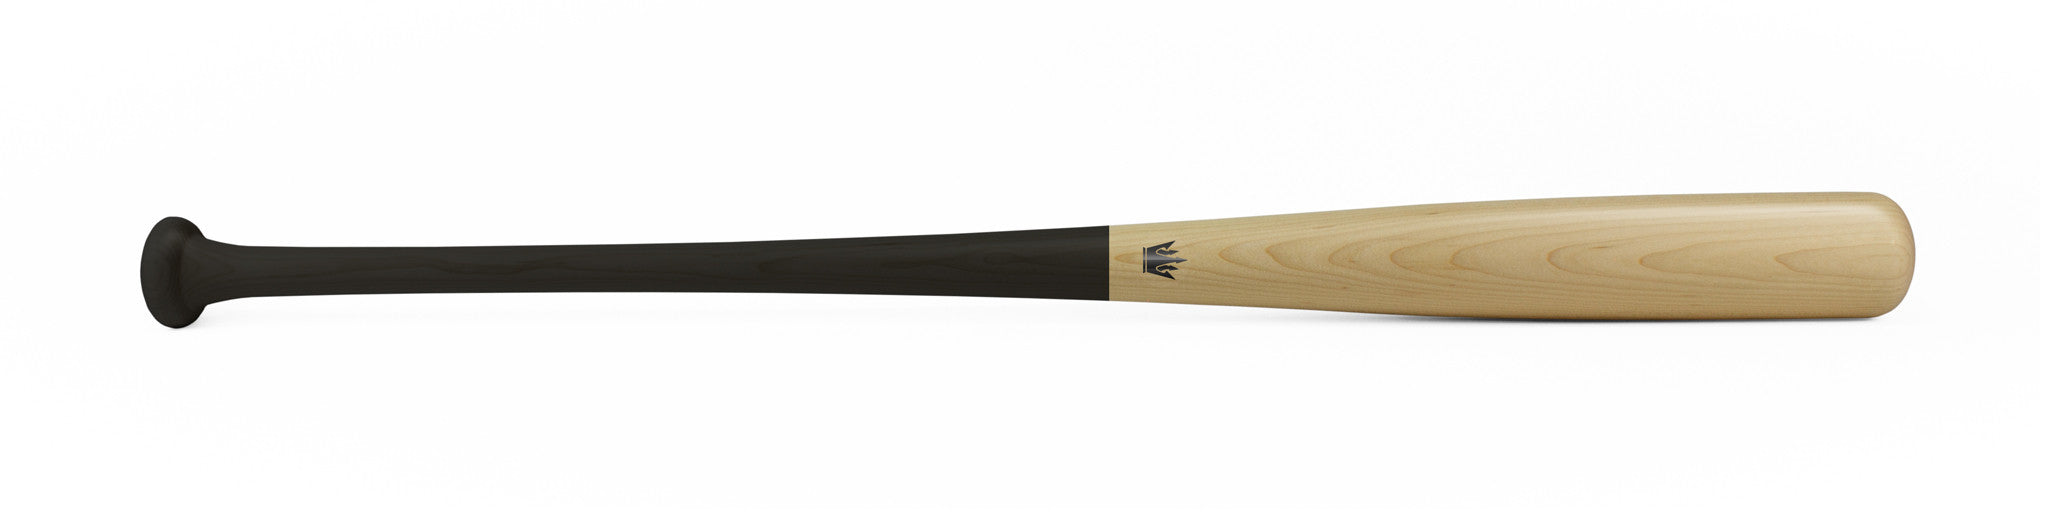 Wood bat - Birch model 421 Black Dip - 16